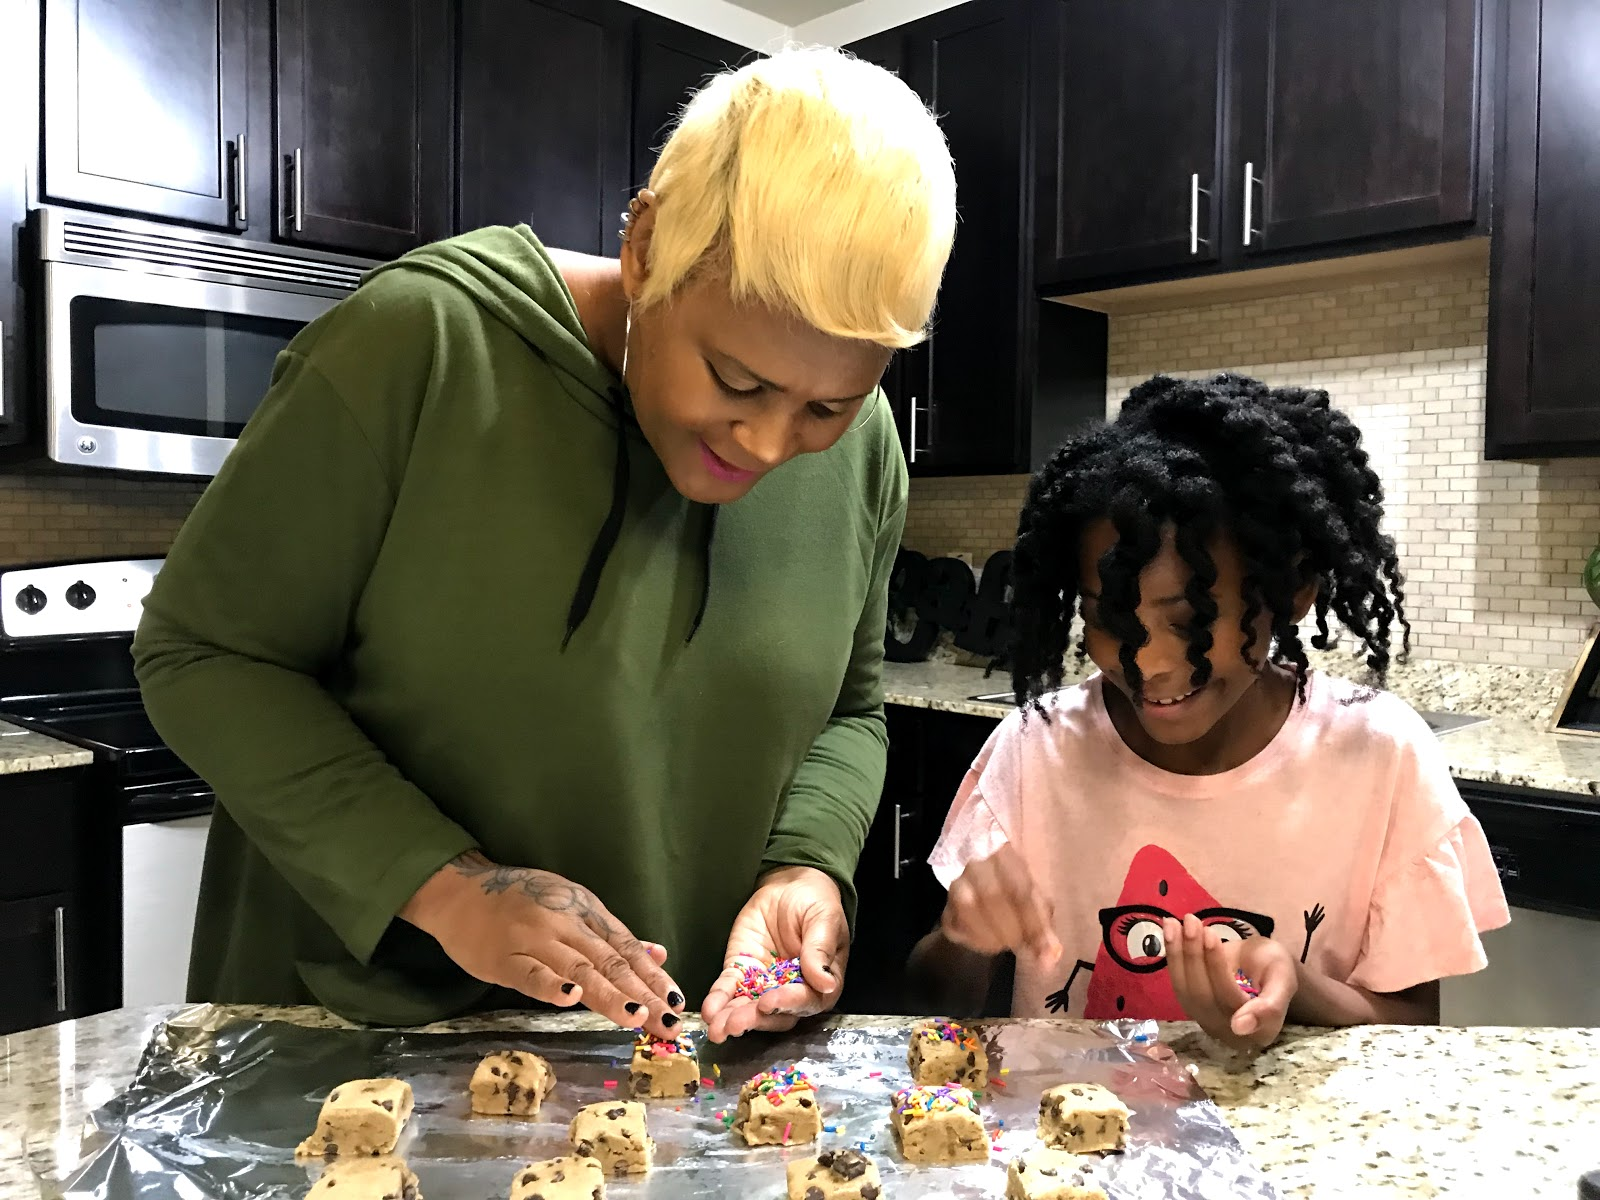 Image: Tangie Bell and Daughter Moriah decorating cookies. For the joyful list on Bits and babbles